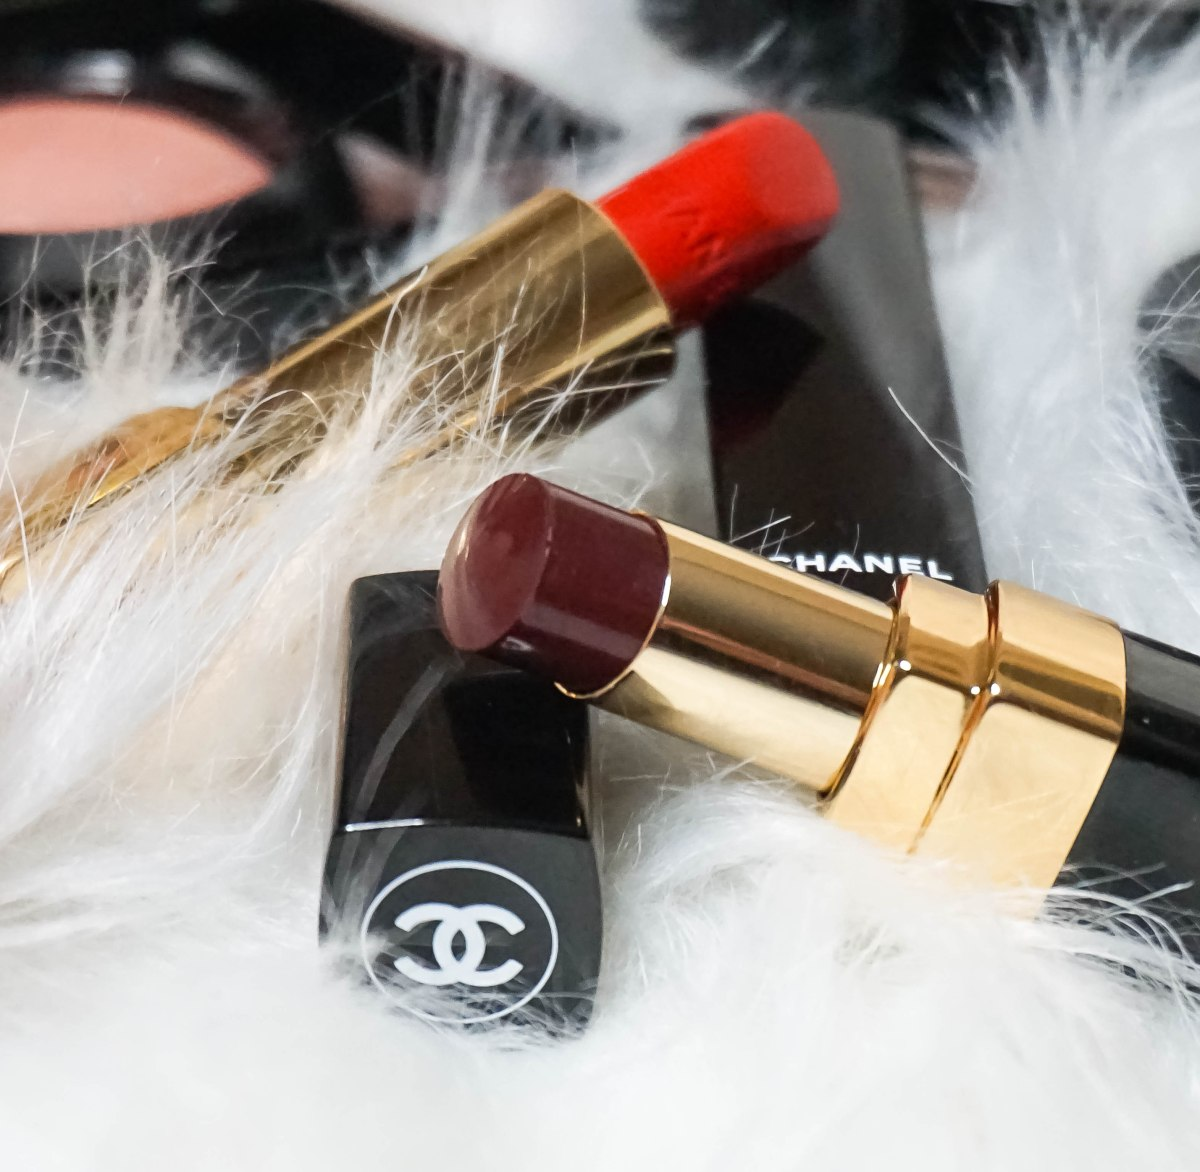 CHANEL- COCO CODES LIPSTICKS